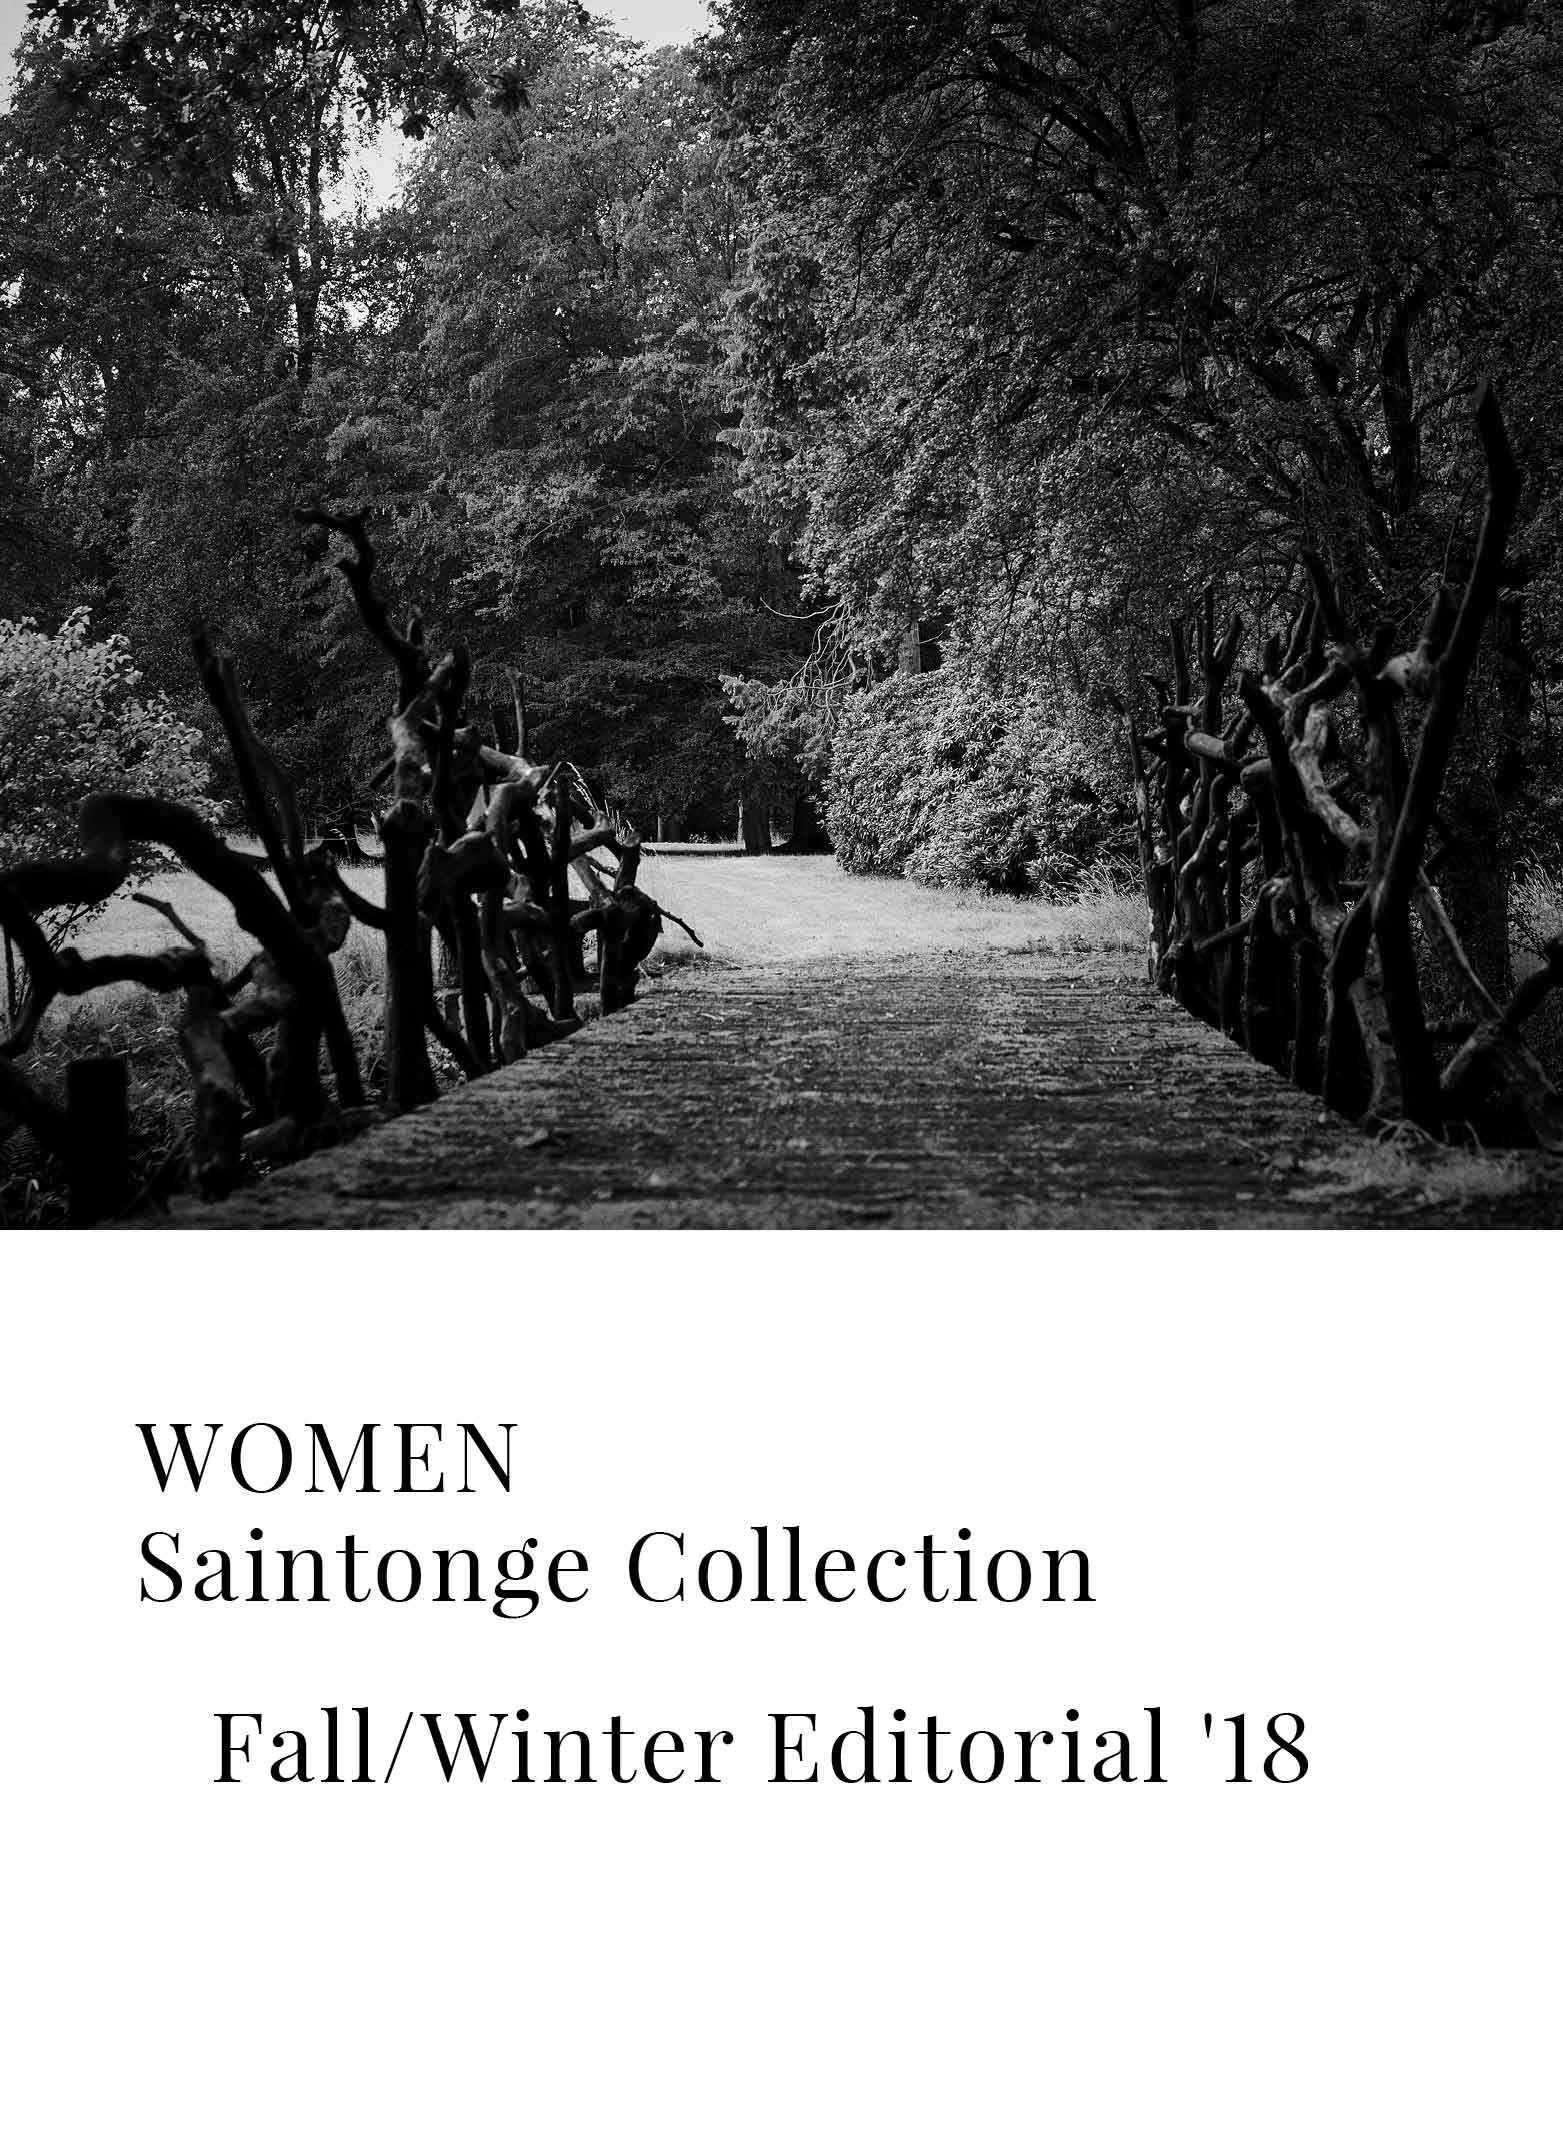 Bellerose Fall Winter'18 Saintonge La Forêt collection for women